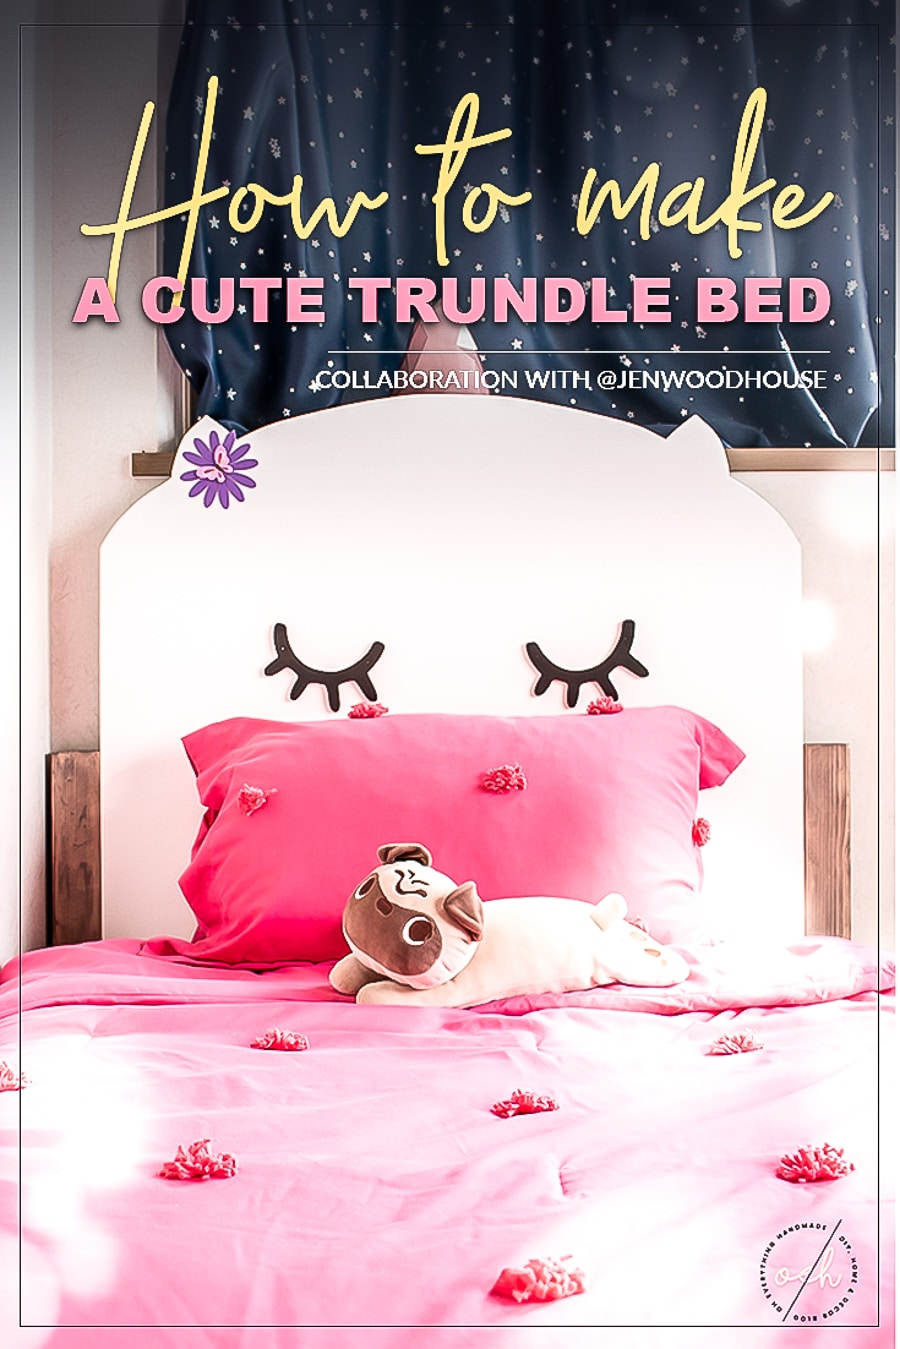 How to make a DIY twin trundle bed with a cute kitty headboard! Plans by Jen Woodhouse